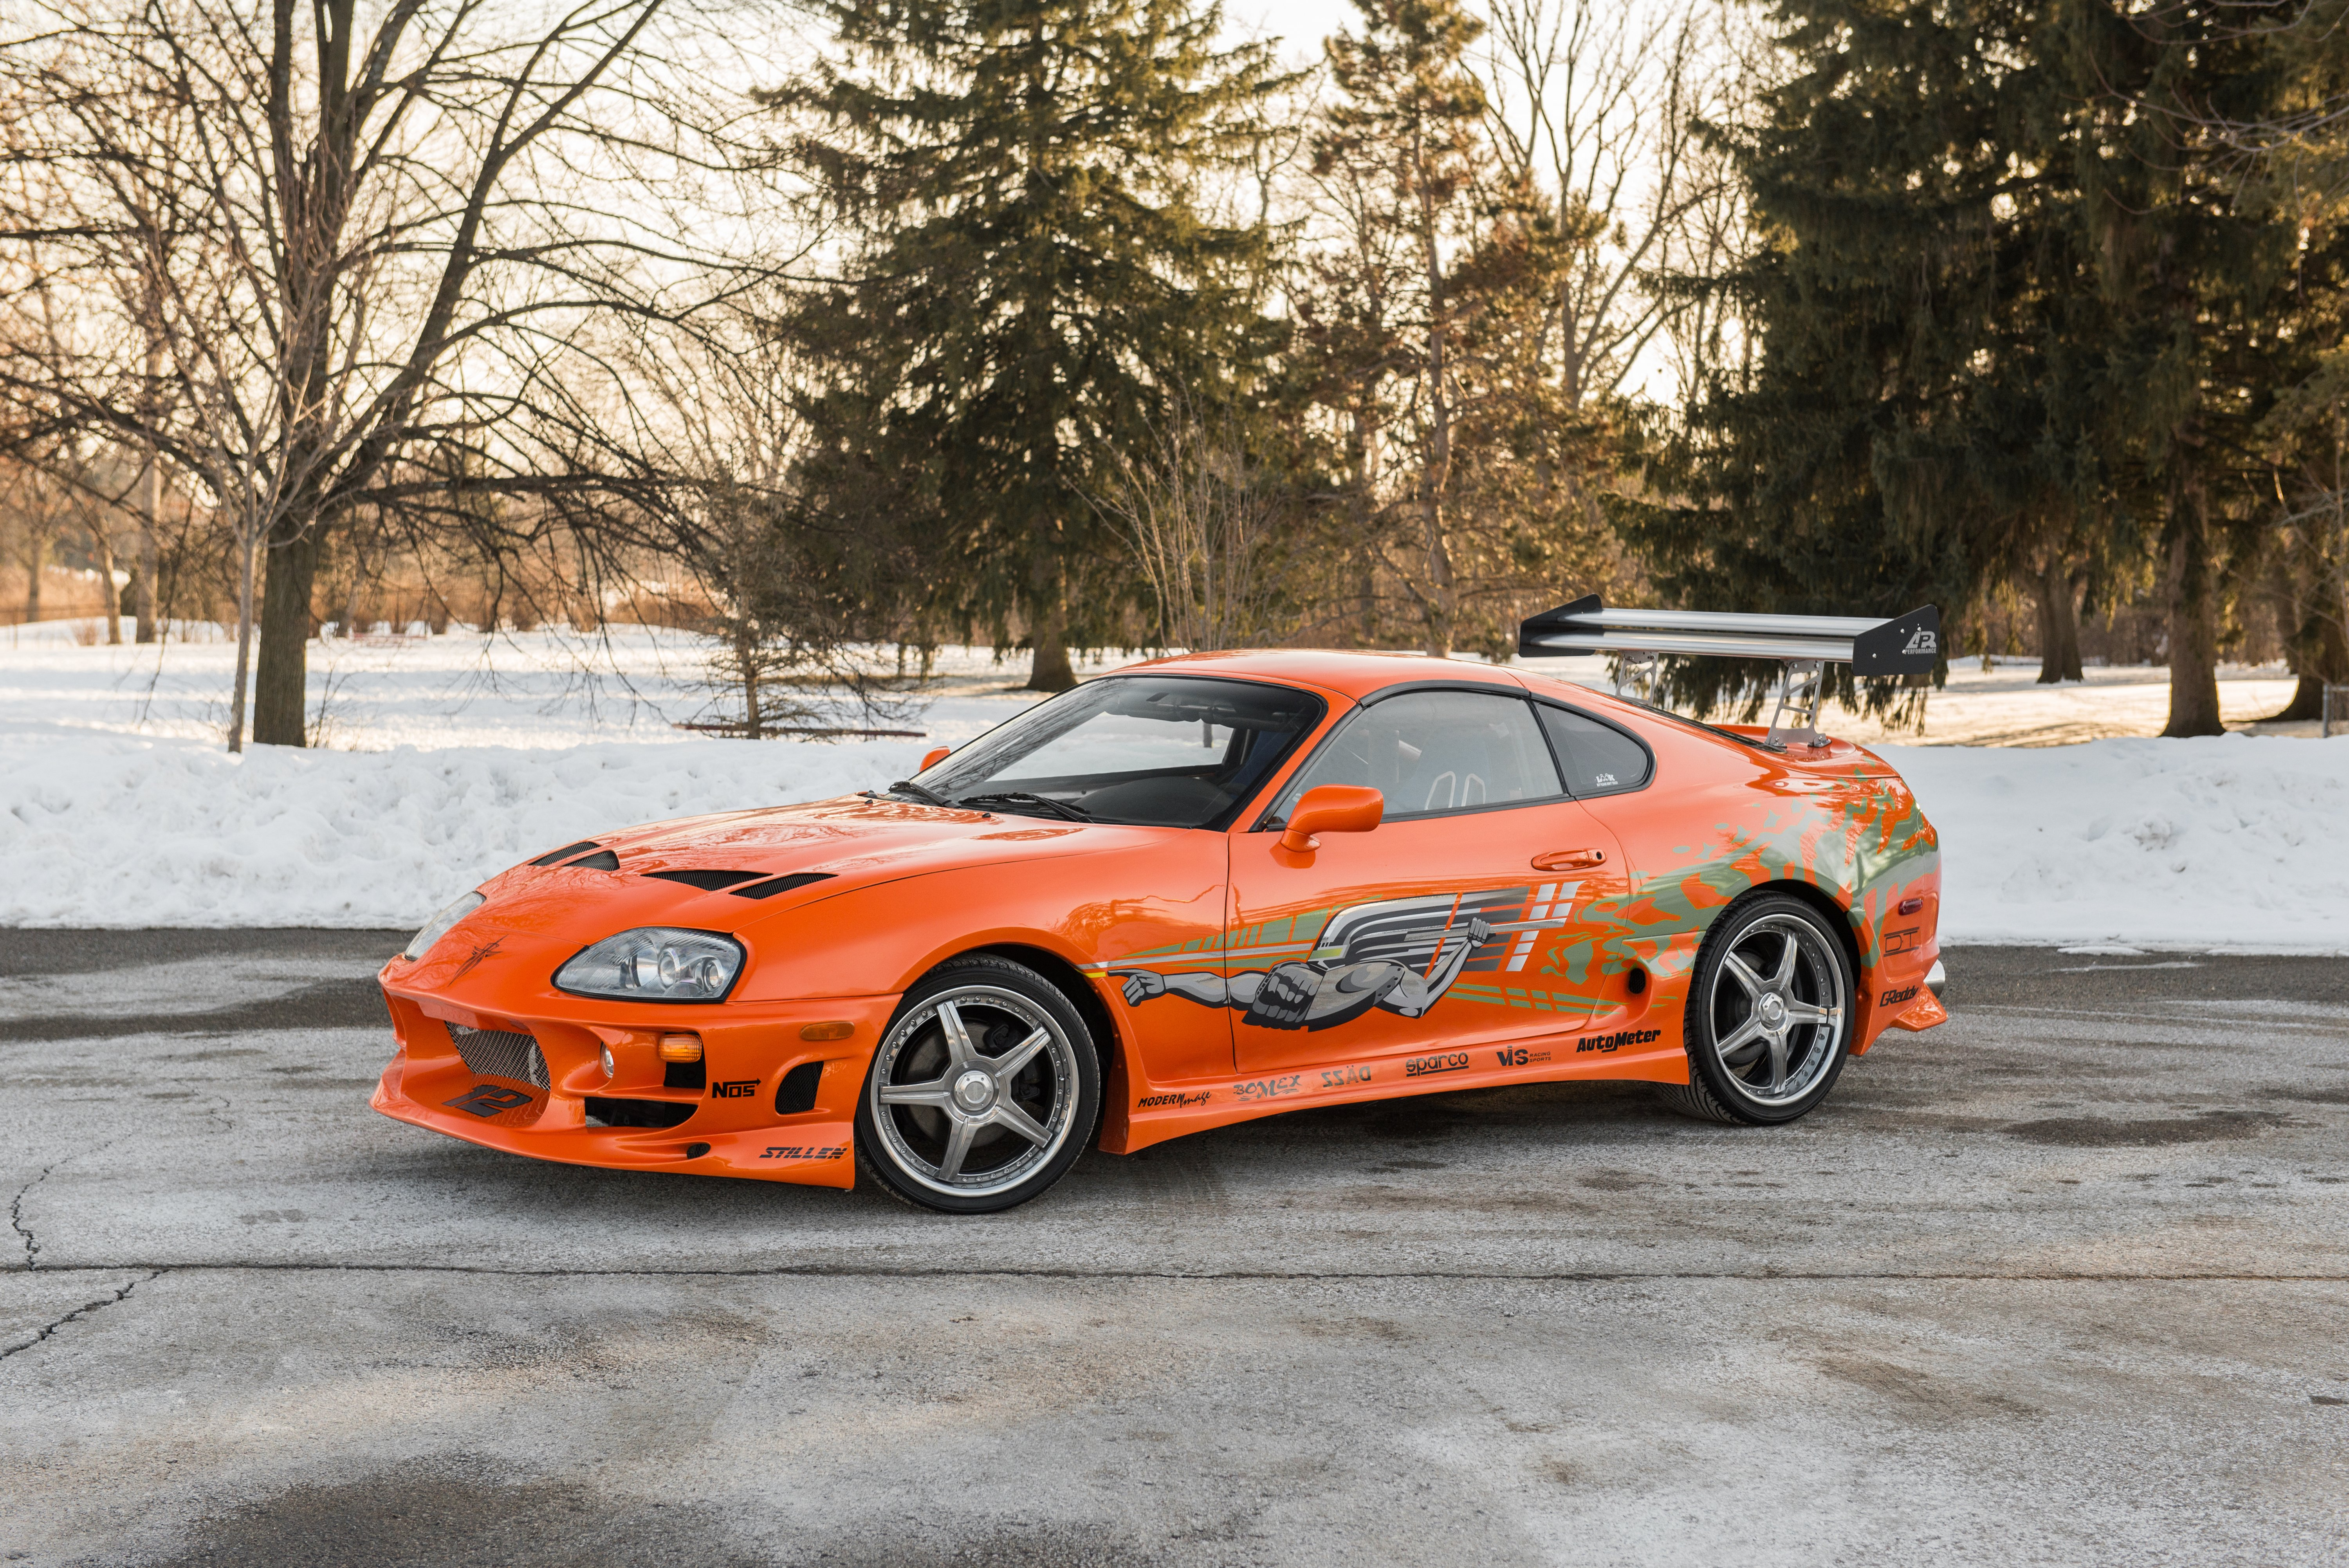 Toyota Supra The Fast and the Furious - 4258.8KB